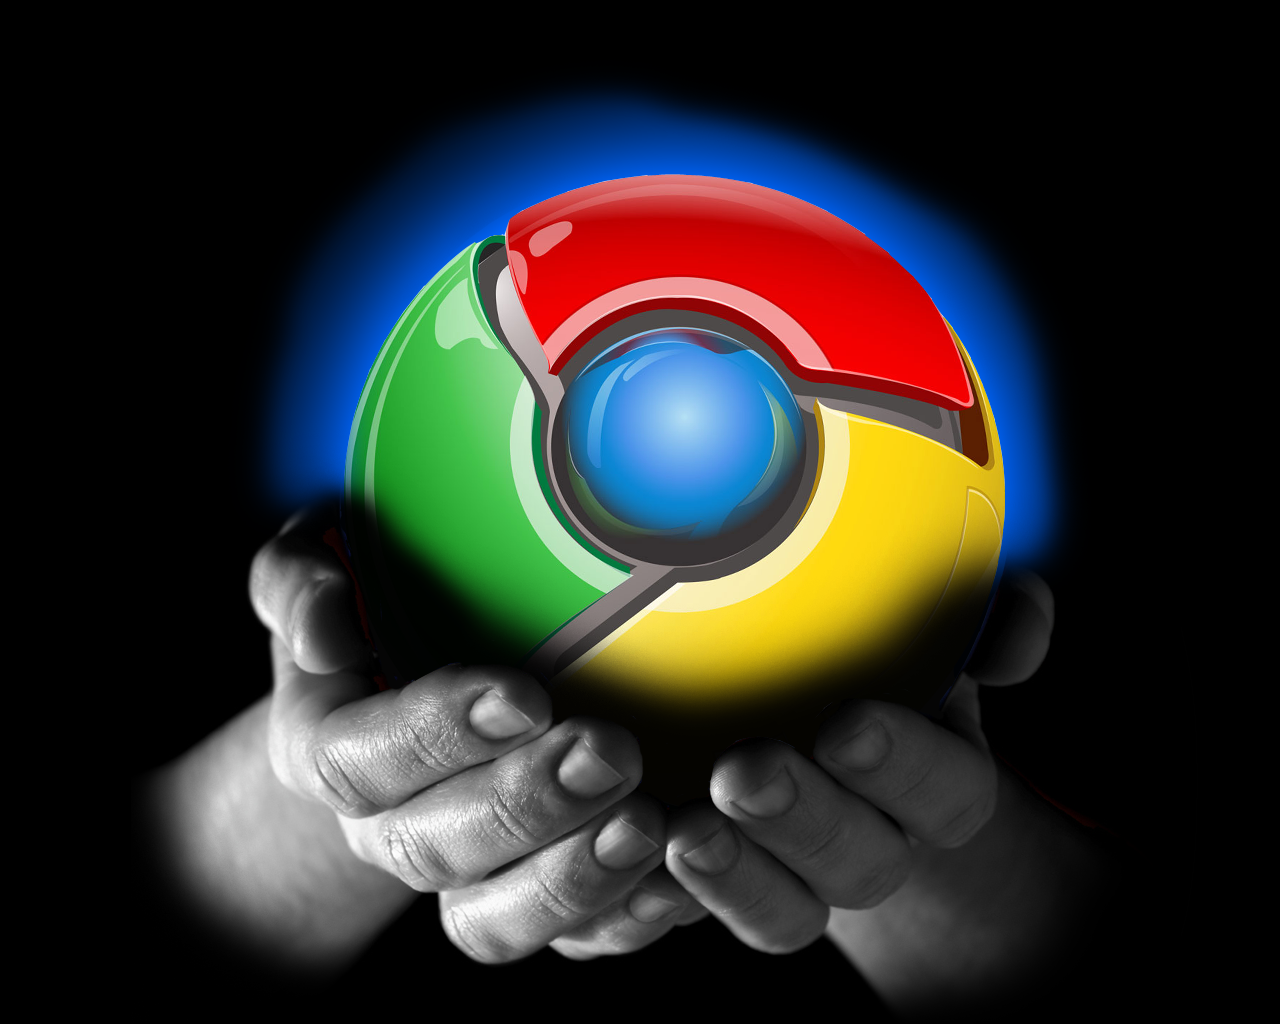 Chrome will start marking HTTP sites as 'not secure'